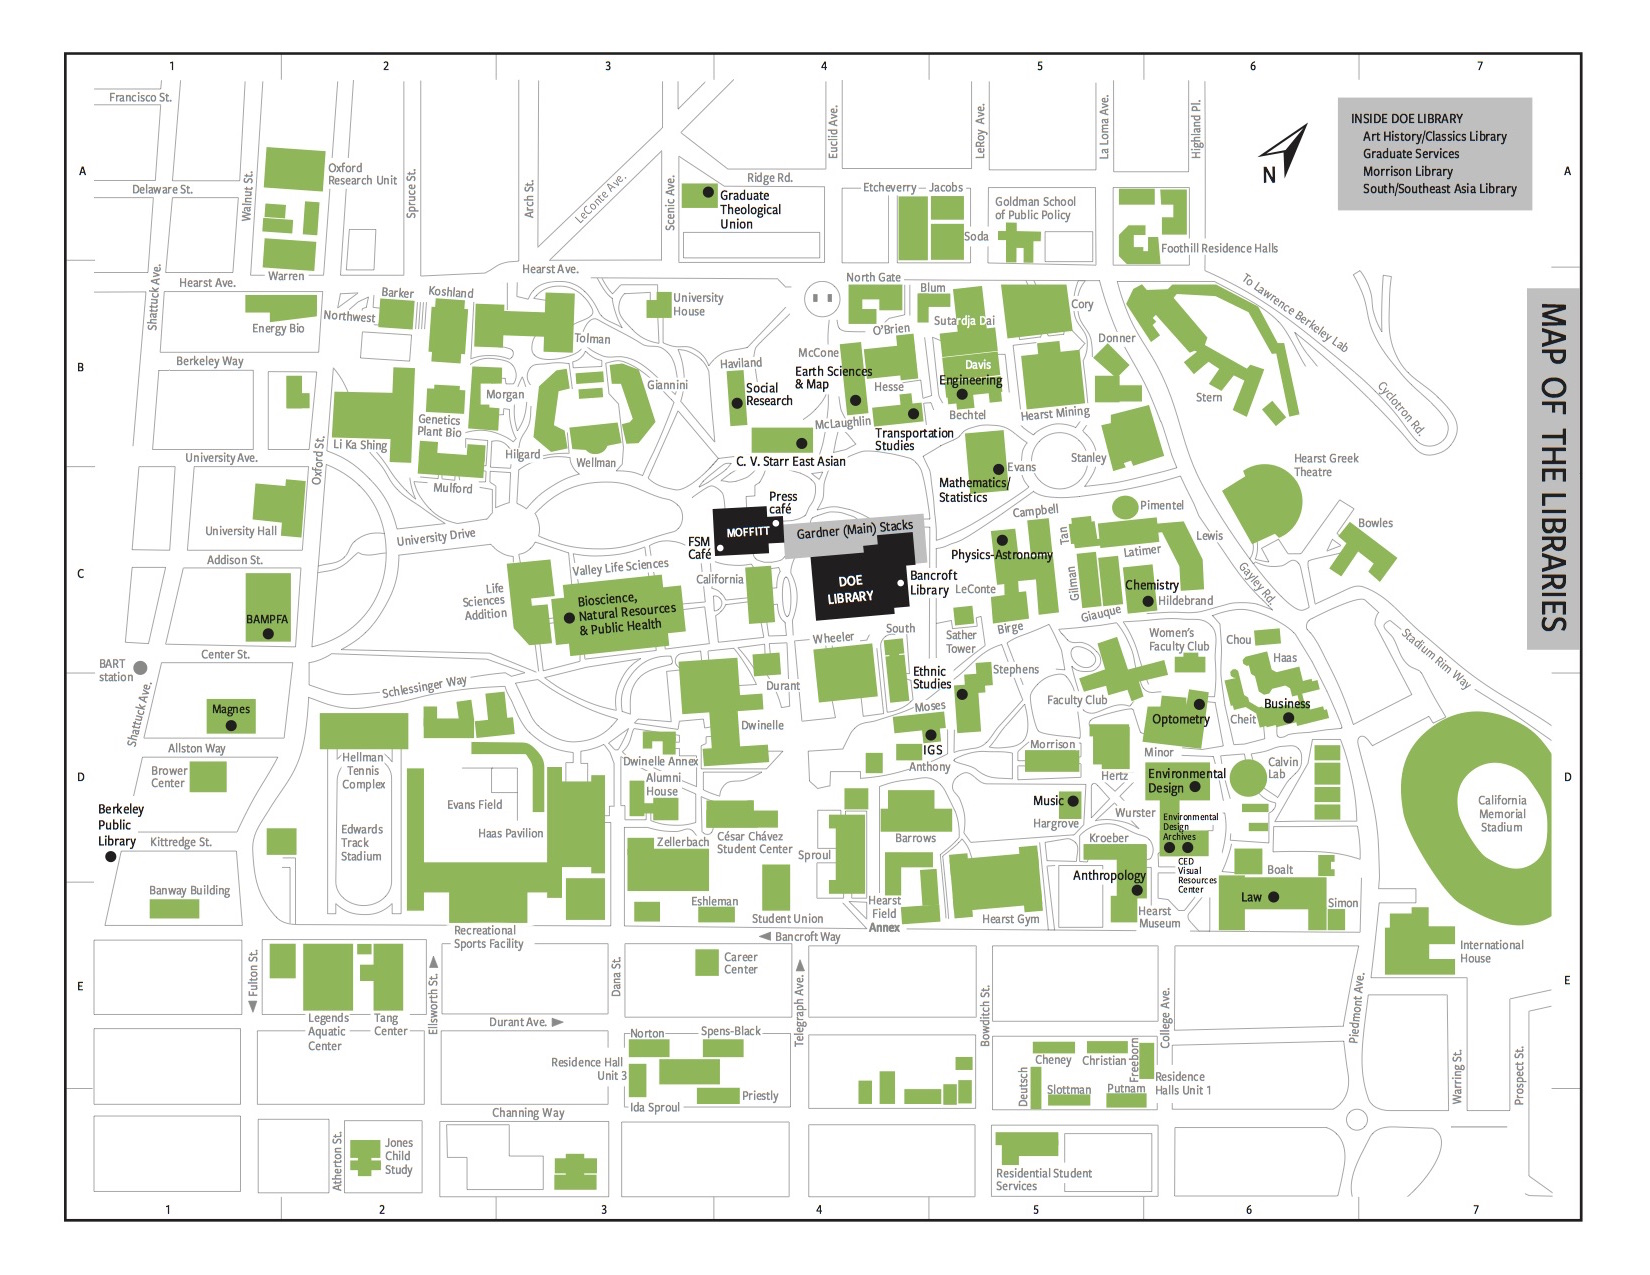 Campus map of UCB Libraries